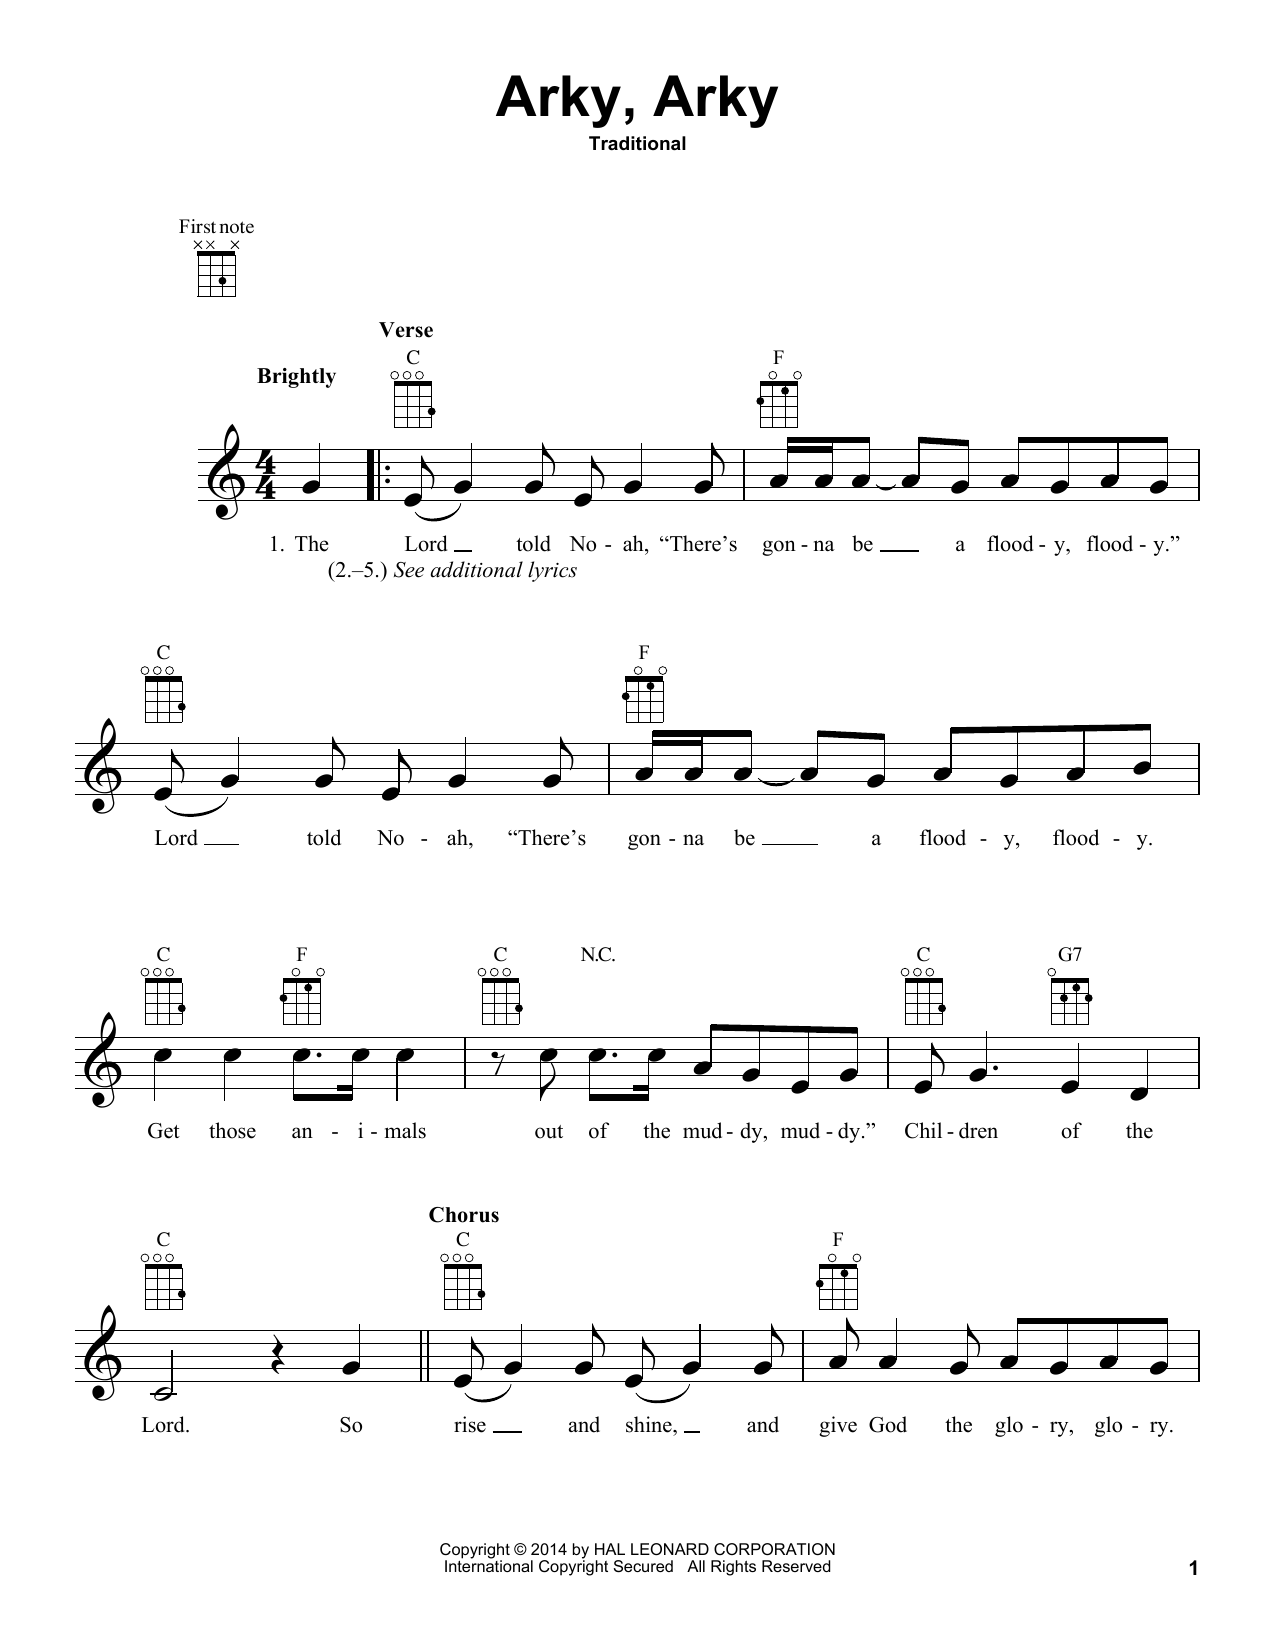 Traditional Arky, Arky sheet music notes and chords. Download Printable PDF.